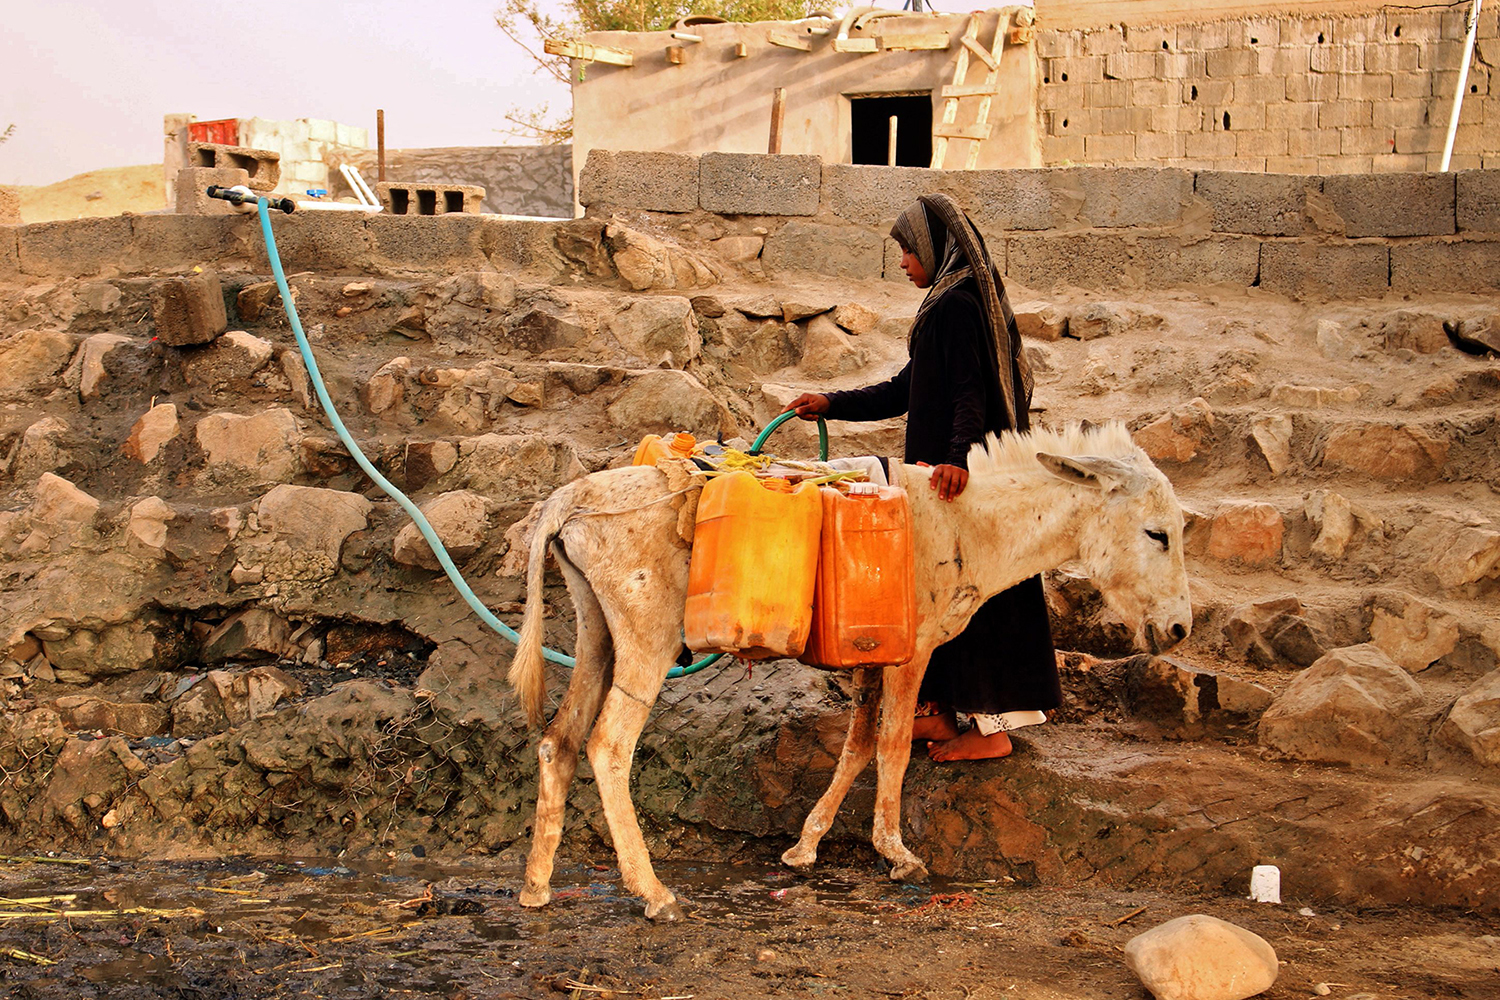 A displaced Yemeni woman from Hodeida fills water containers at a makeshift camp in a village in the northern district of Abs in the country's Hajjah province on May 9. ESSA AHMED/AFP/Getty Images